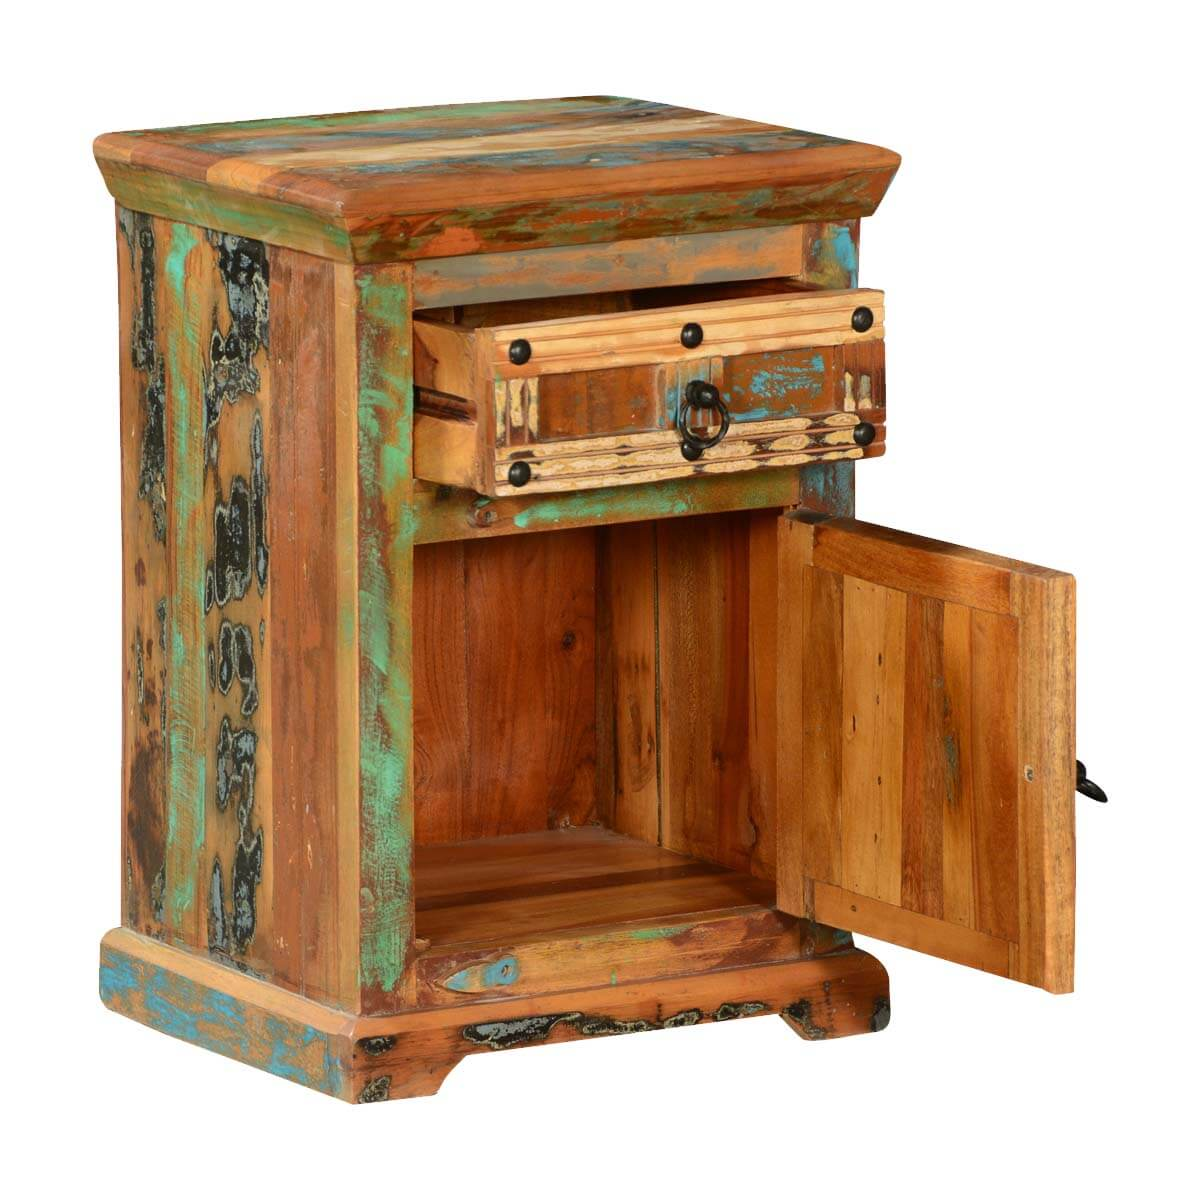 Rustic patches reclaimed wood nightstand end table cabinet for Rustic wood nightstand